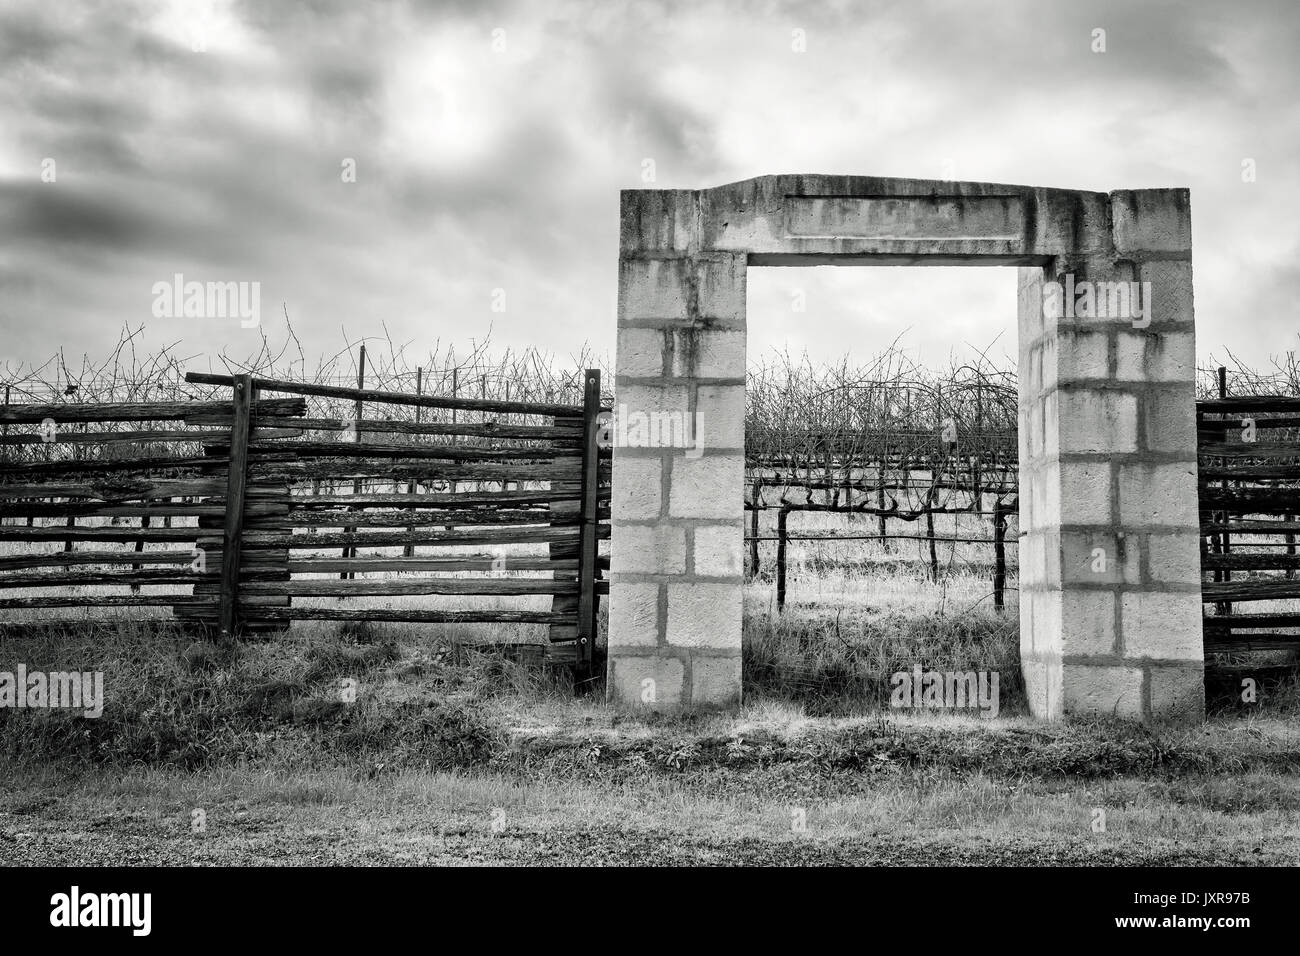 California vineyard and gate made of stone blocks. Black and white image - Stock Image